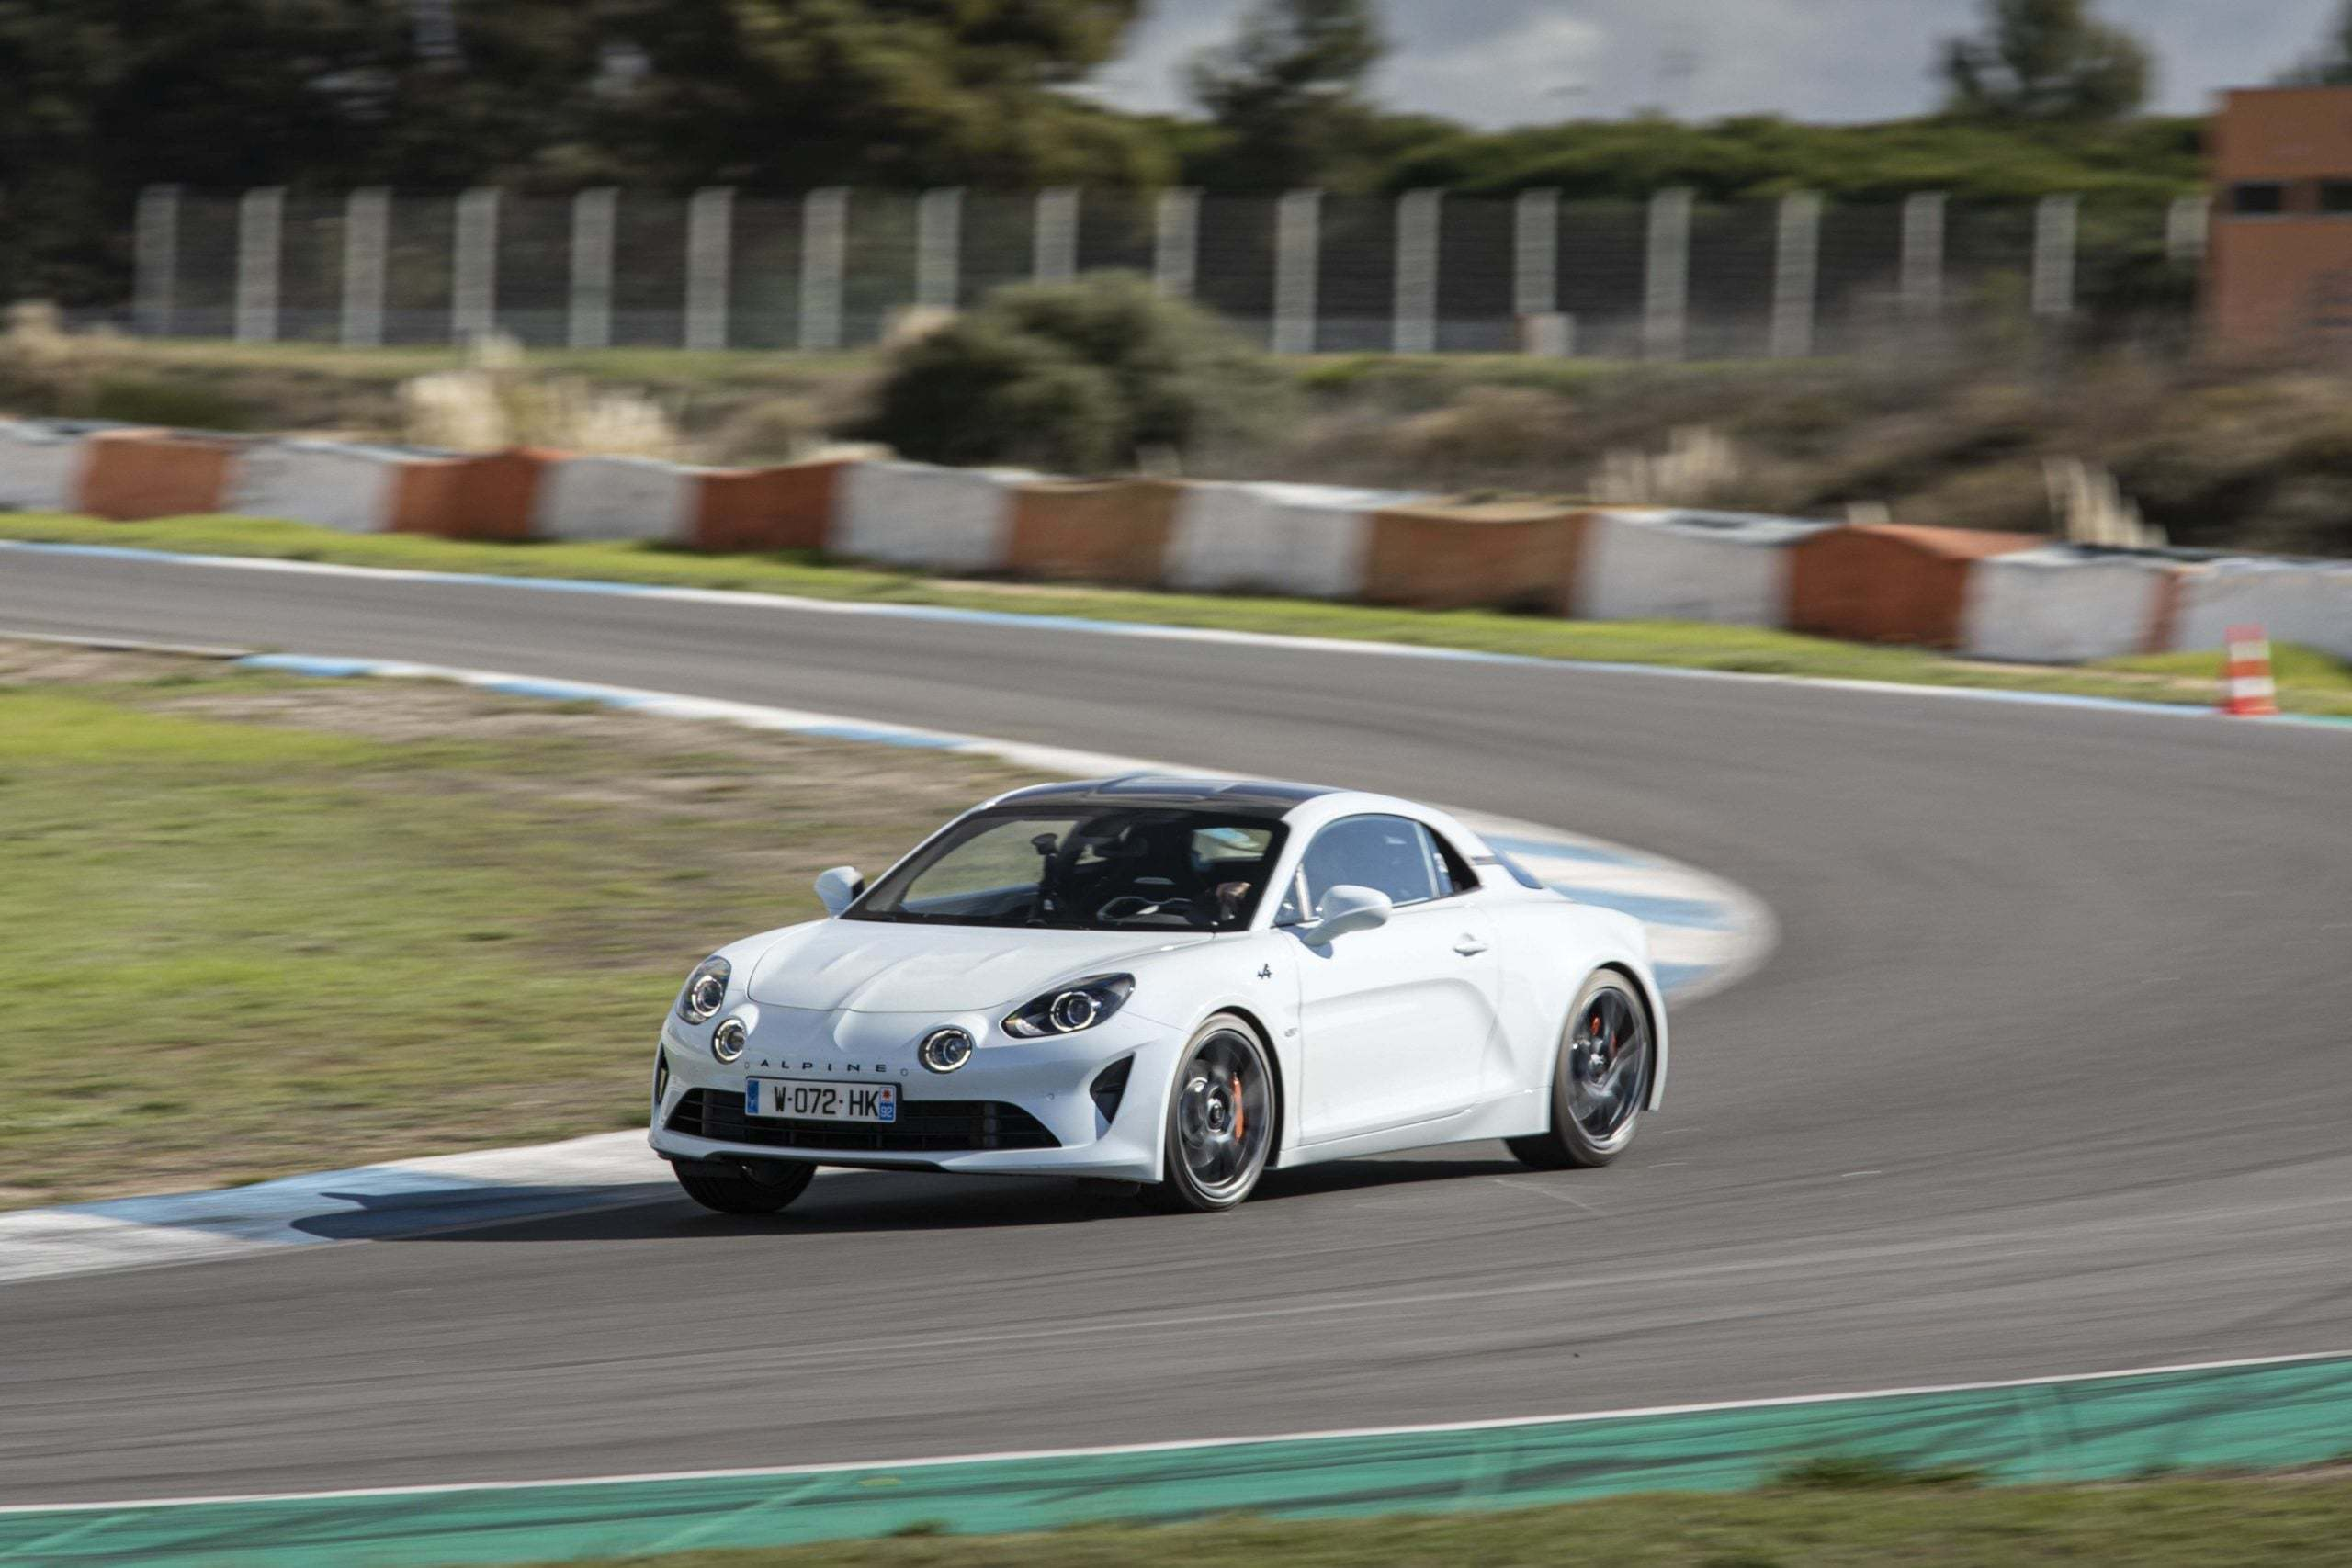 essai alpine a110s estoril 3 scaled | Essai Alpine A110S : le point sur les S